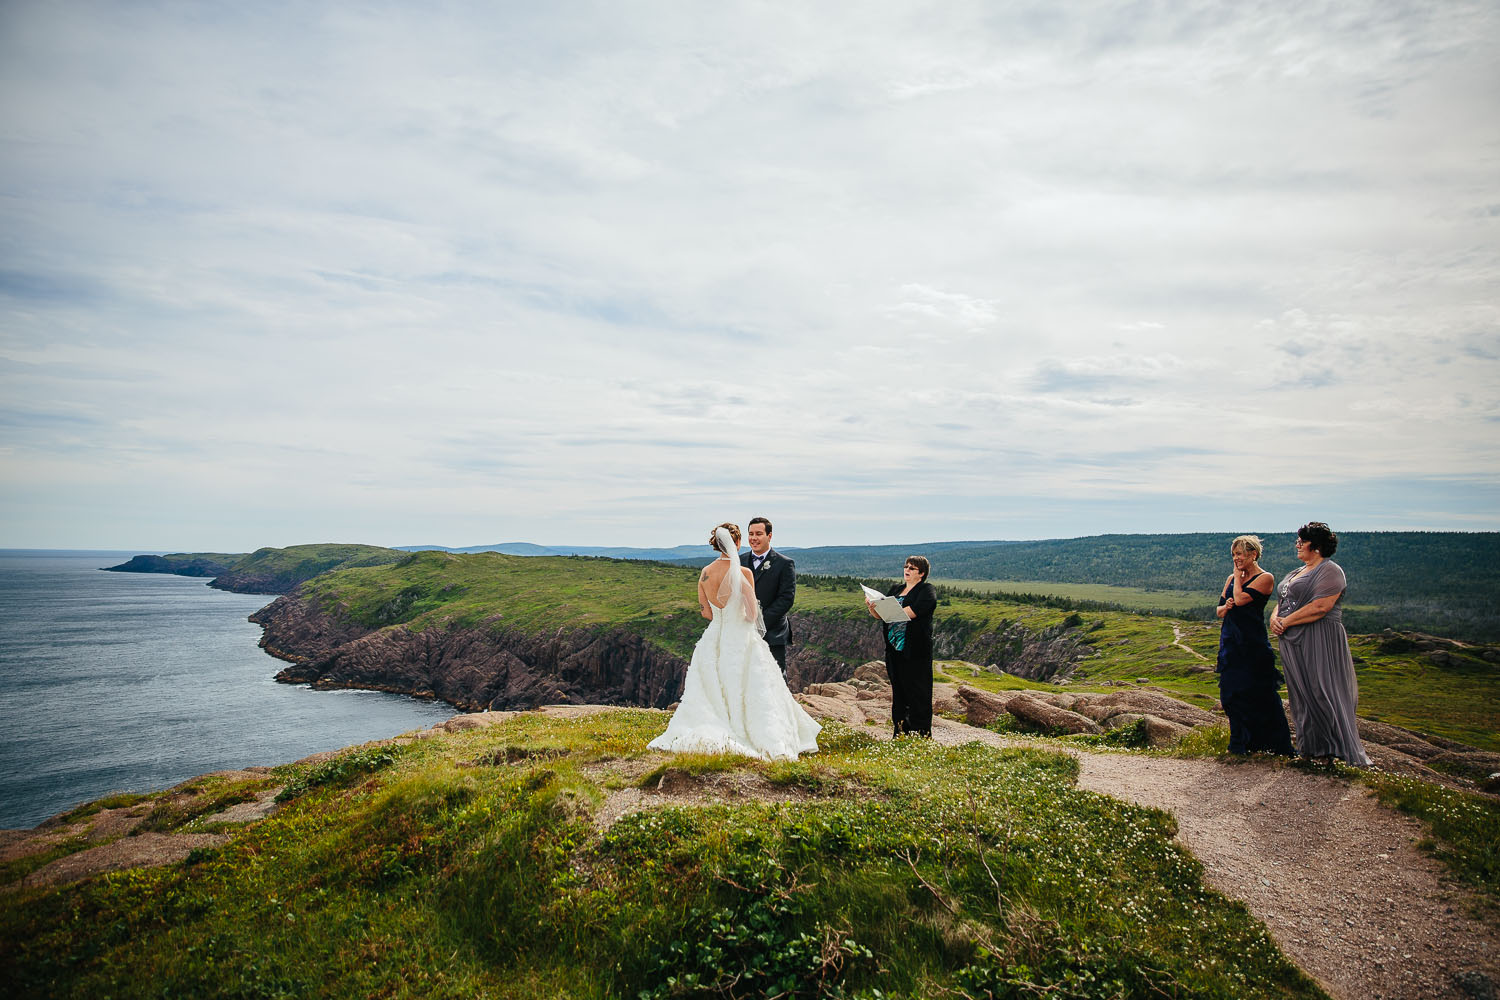 Thea-Chris-Cape-Spear-Wedding-Photography28